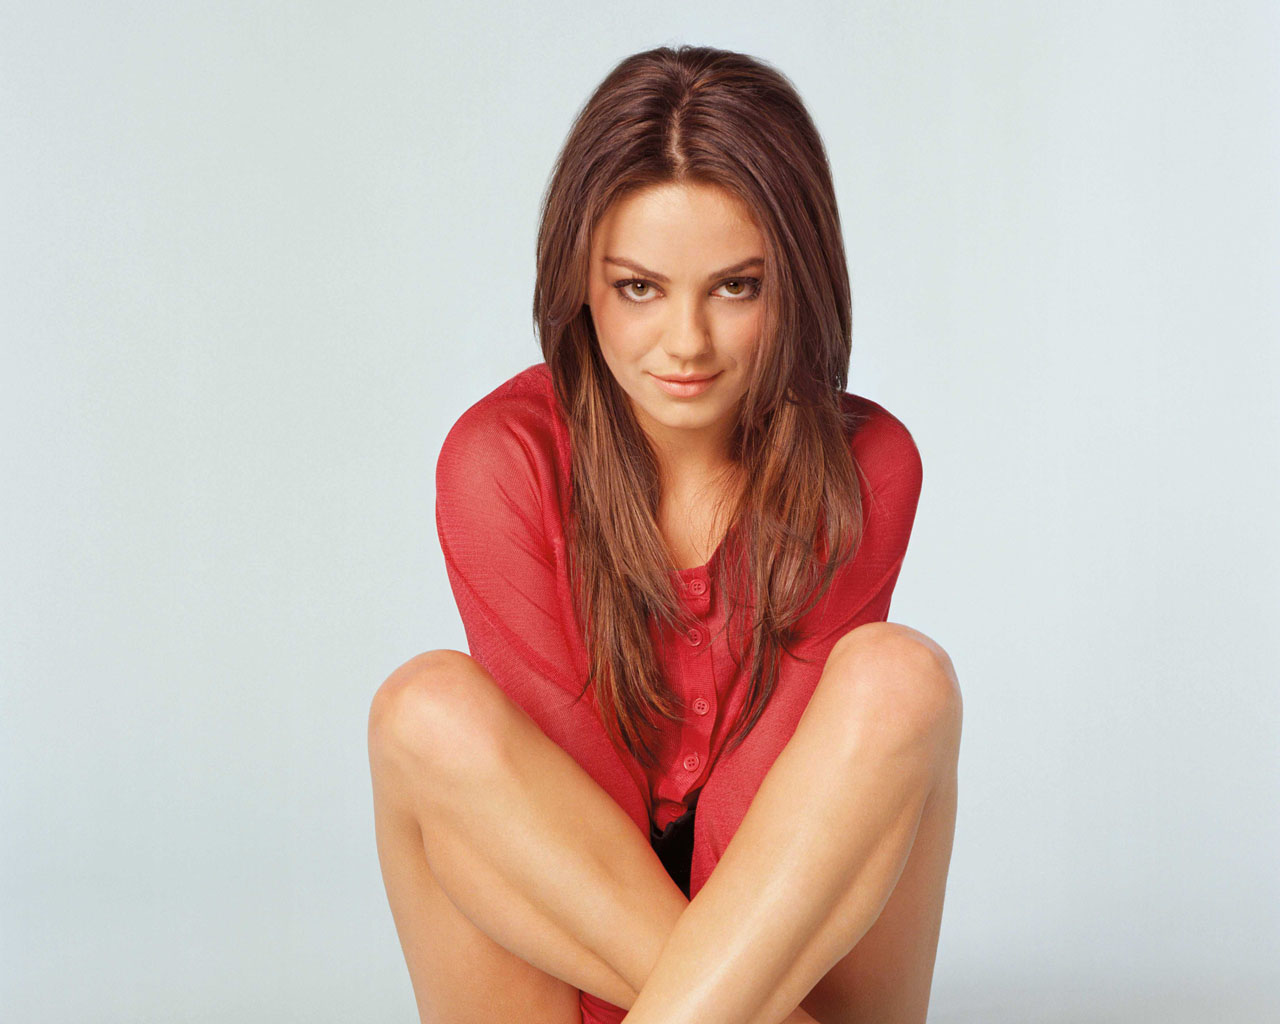 best woman wallpapers: mila kunis wallpapers